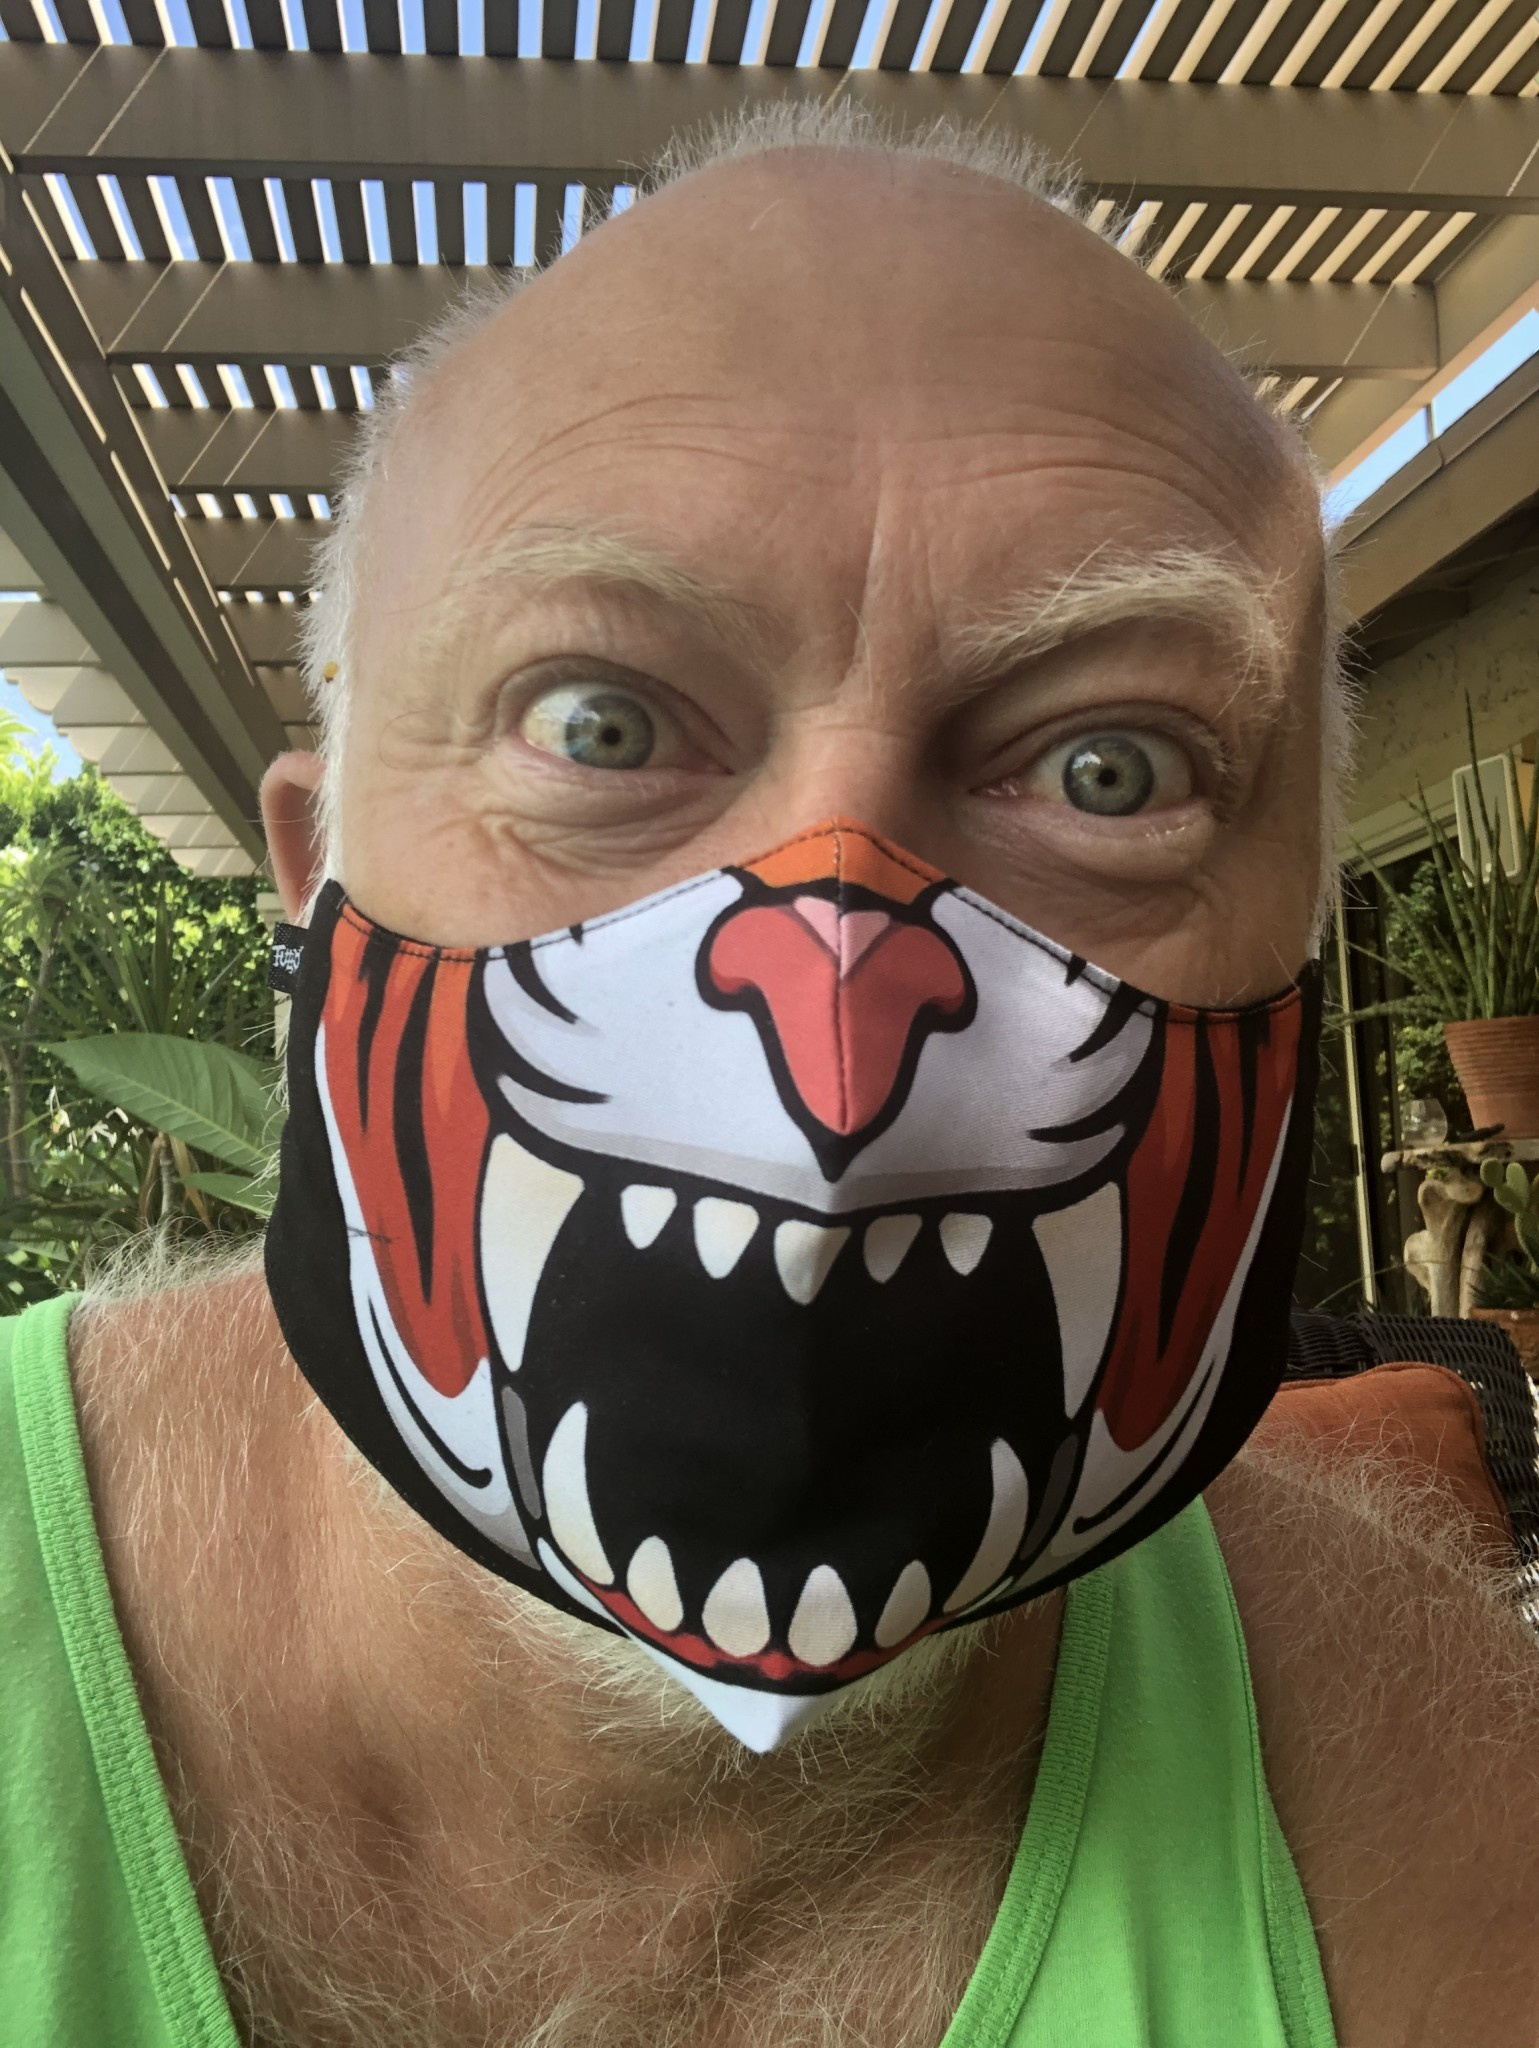 Face Mask, Which one is you? Tiger